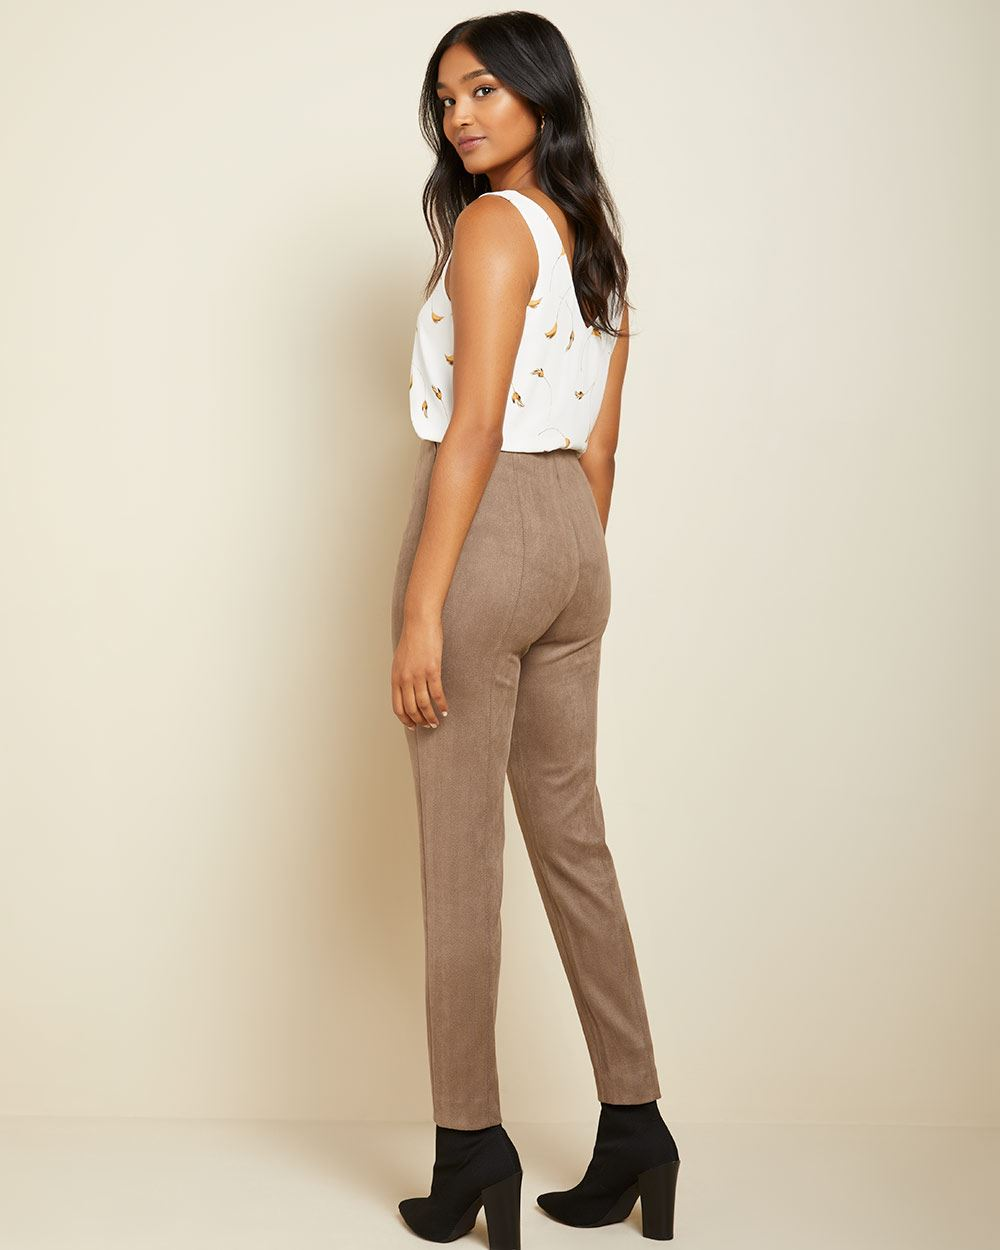 High-waist faux suede legging pant